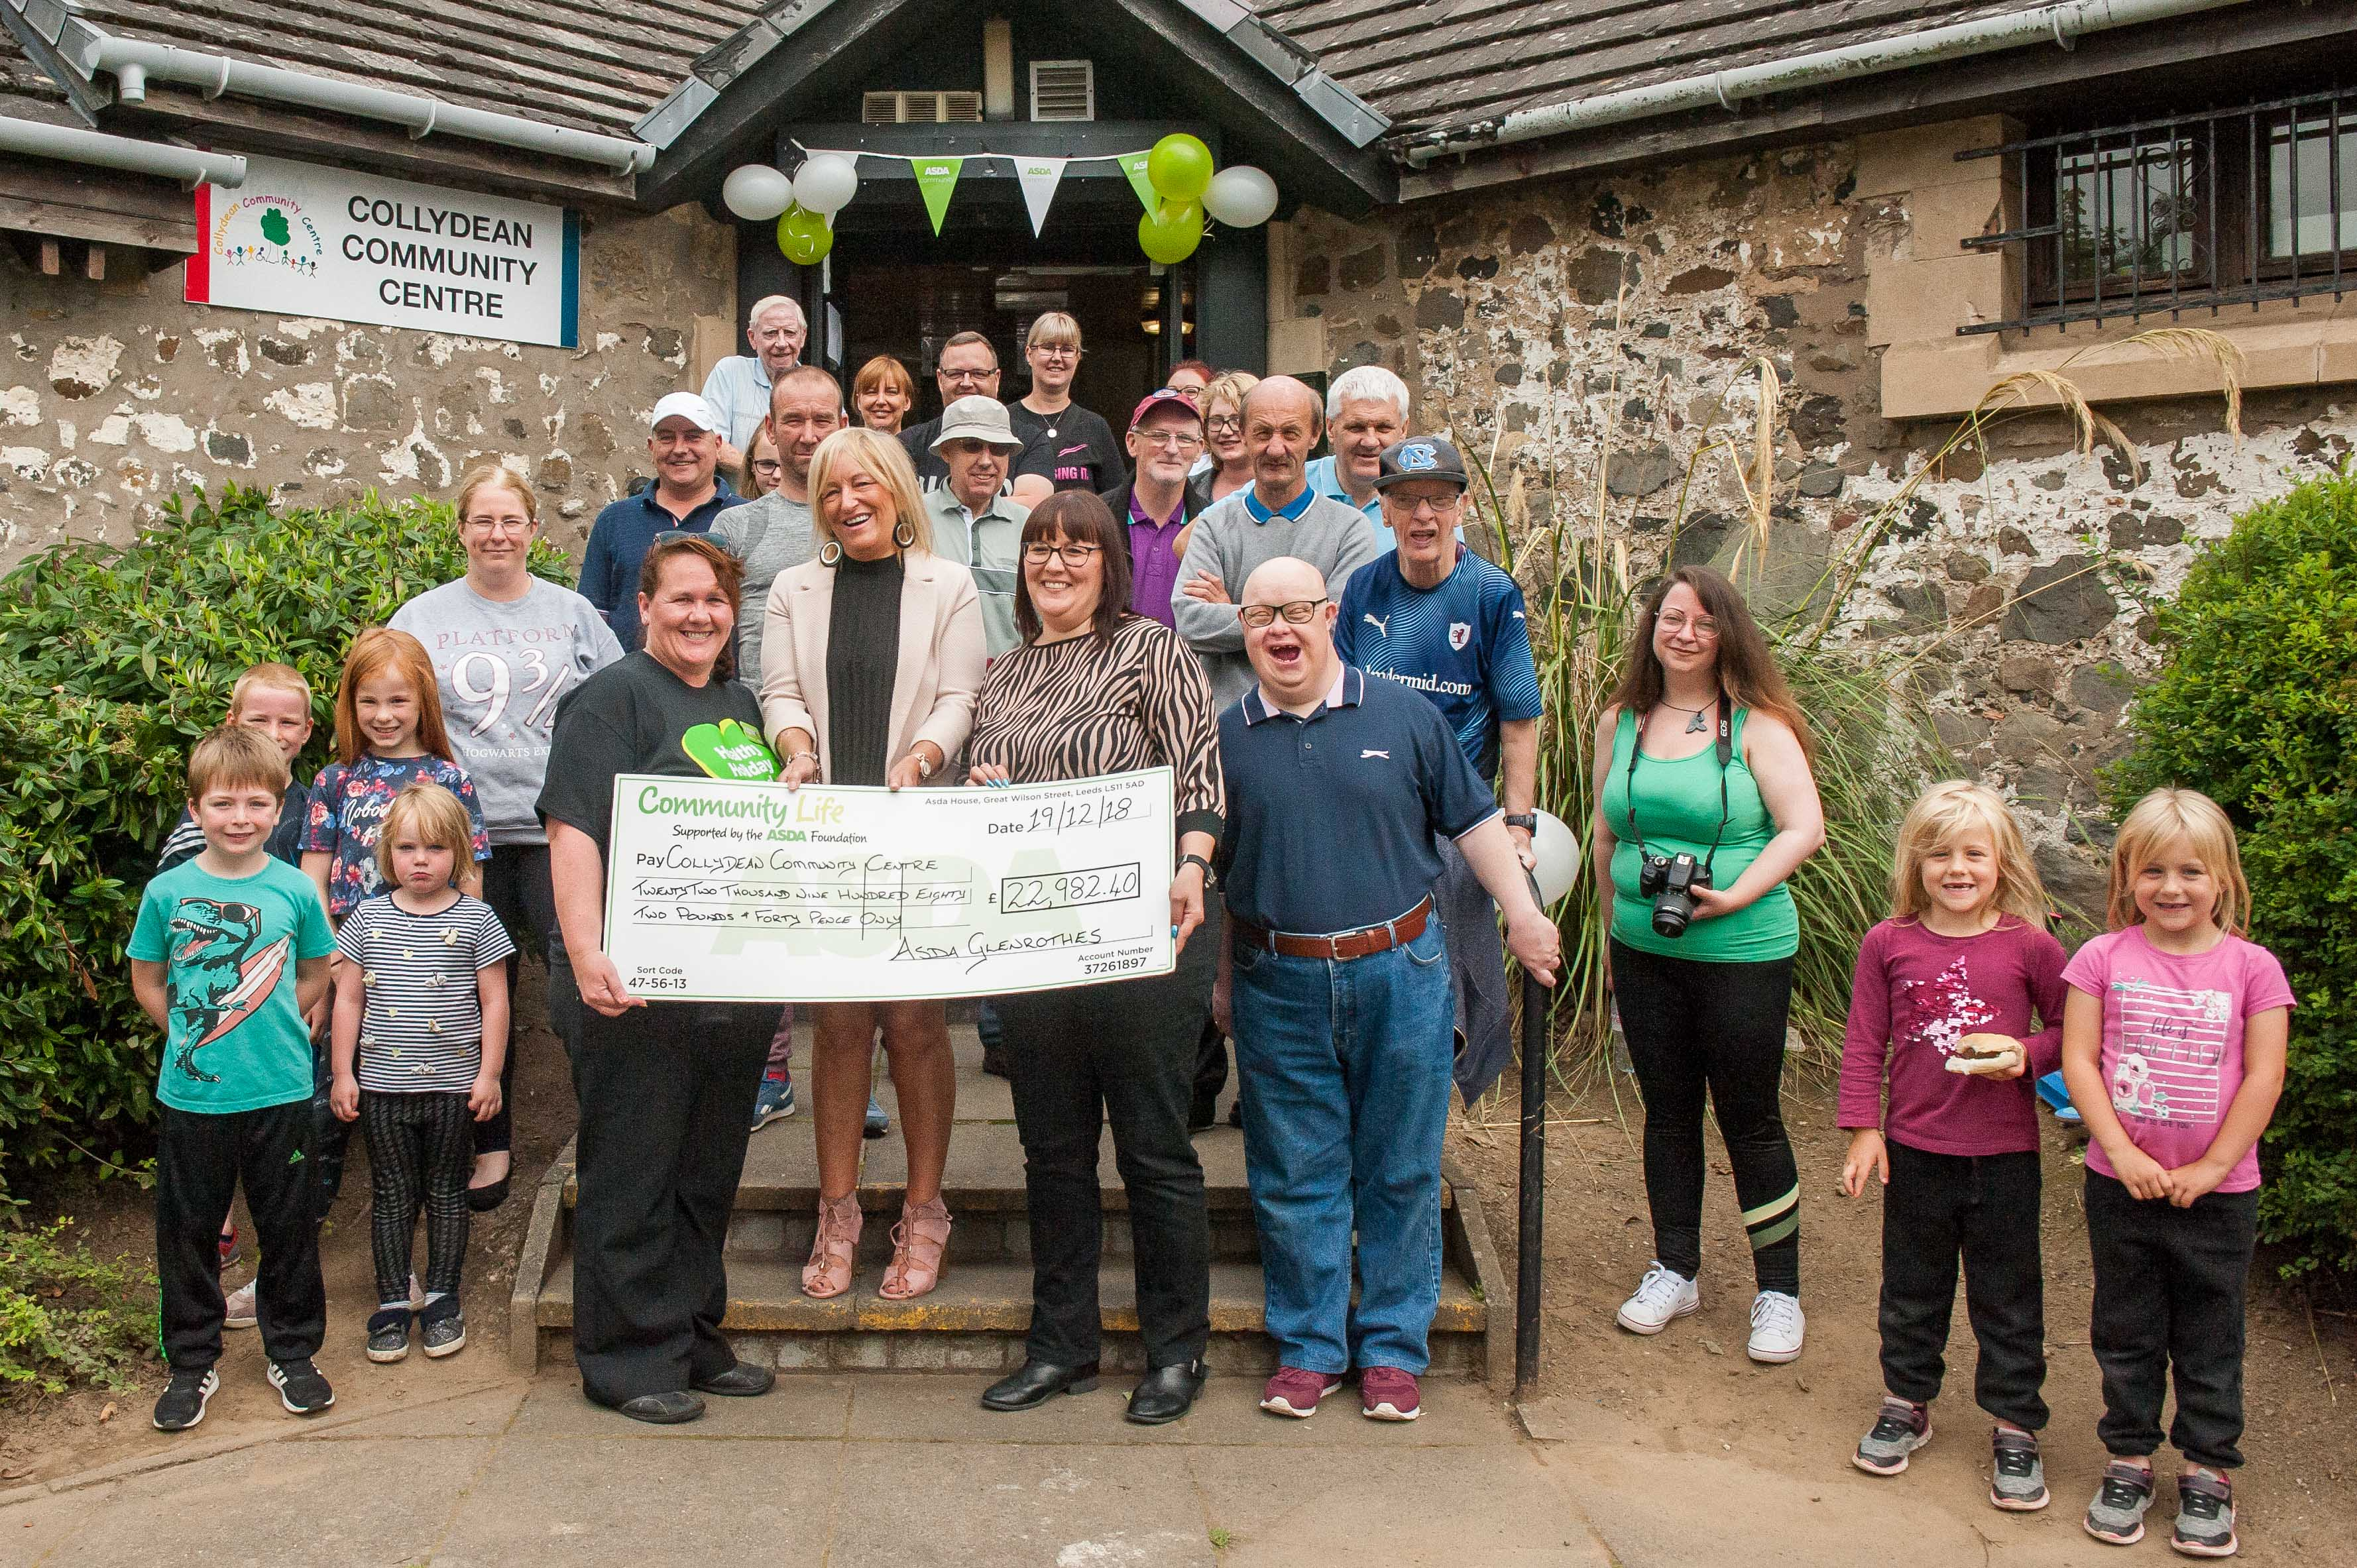 The team at the Collydean Community Cafe celebrate their windfall.